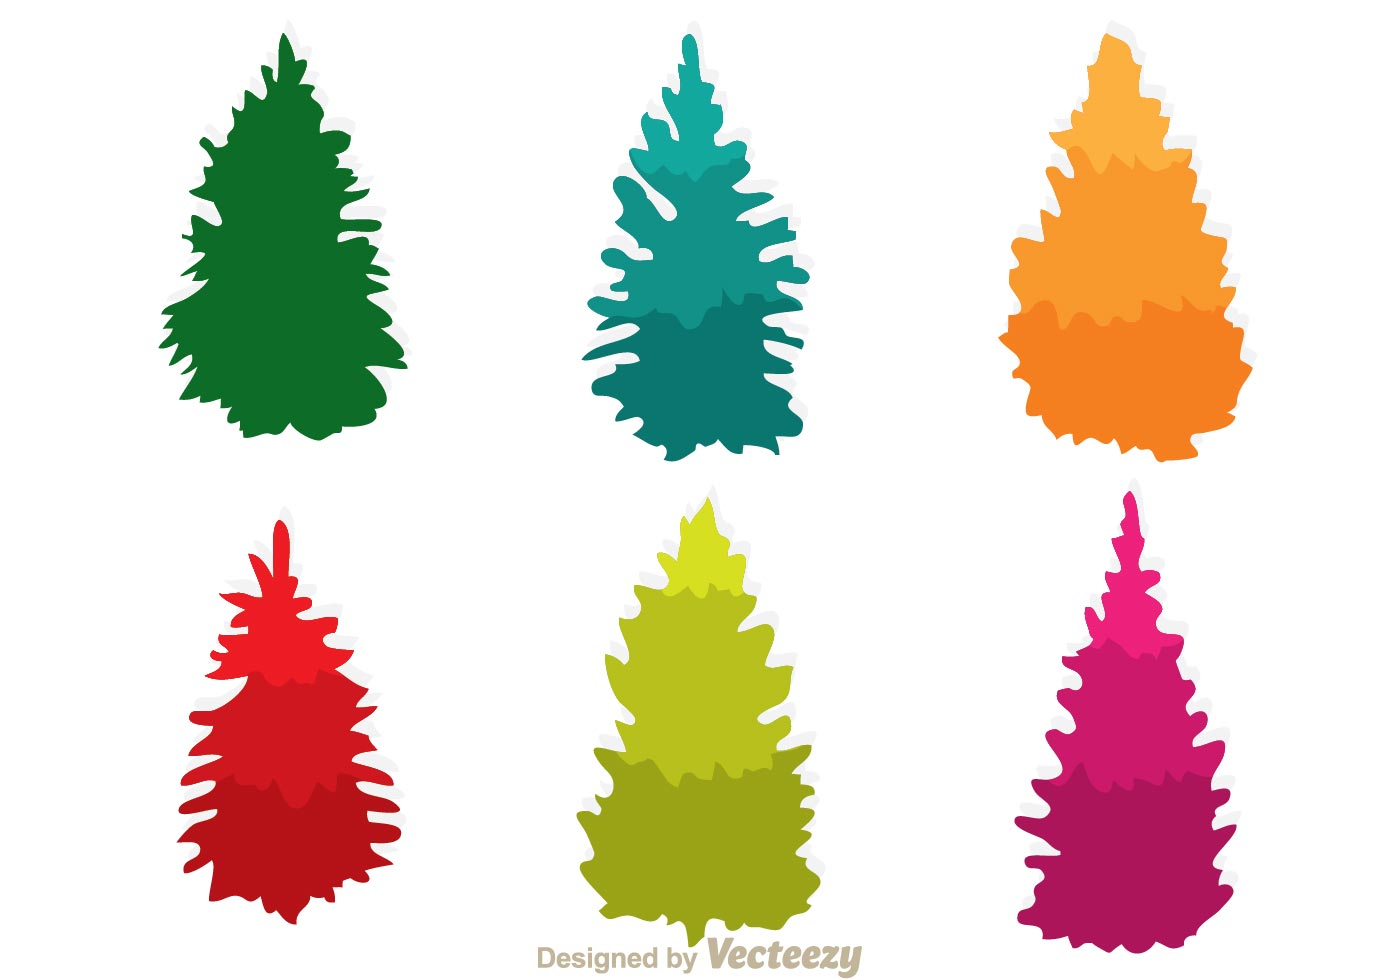 Colorful cedar trees icons download free vector art